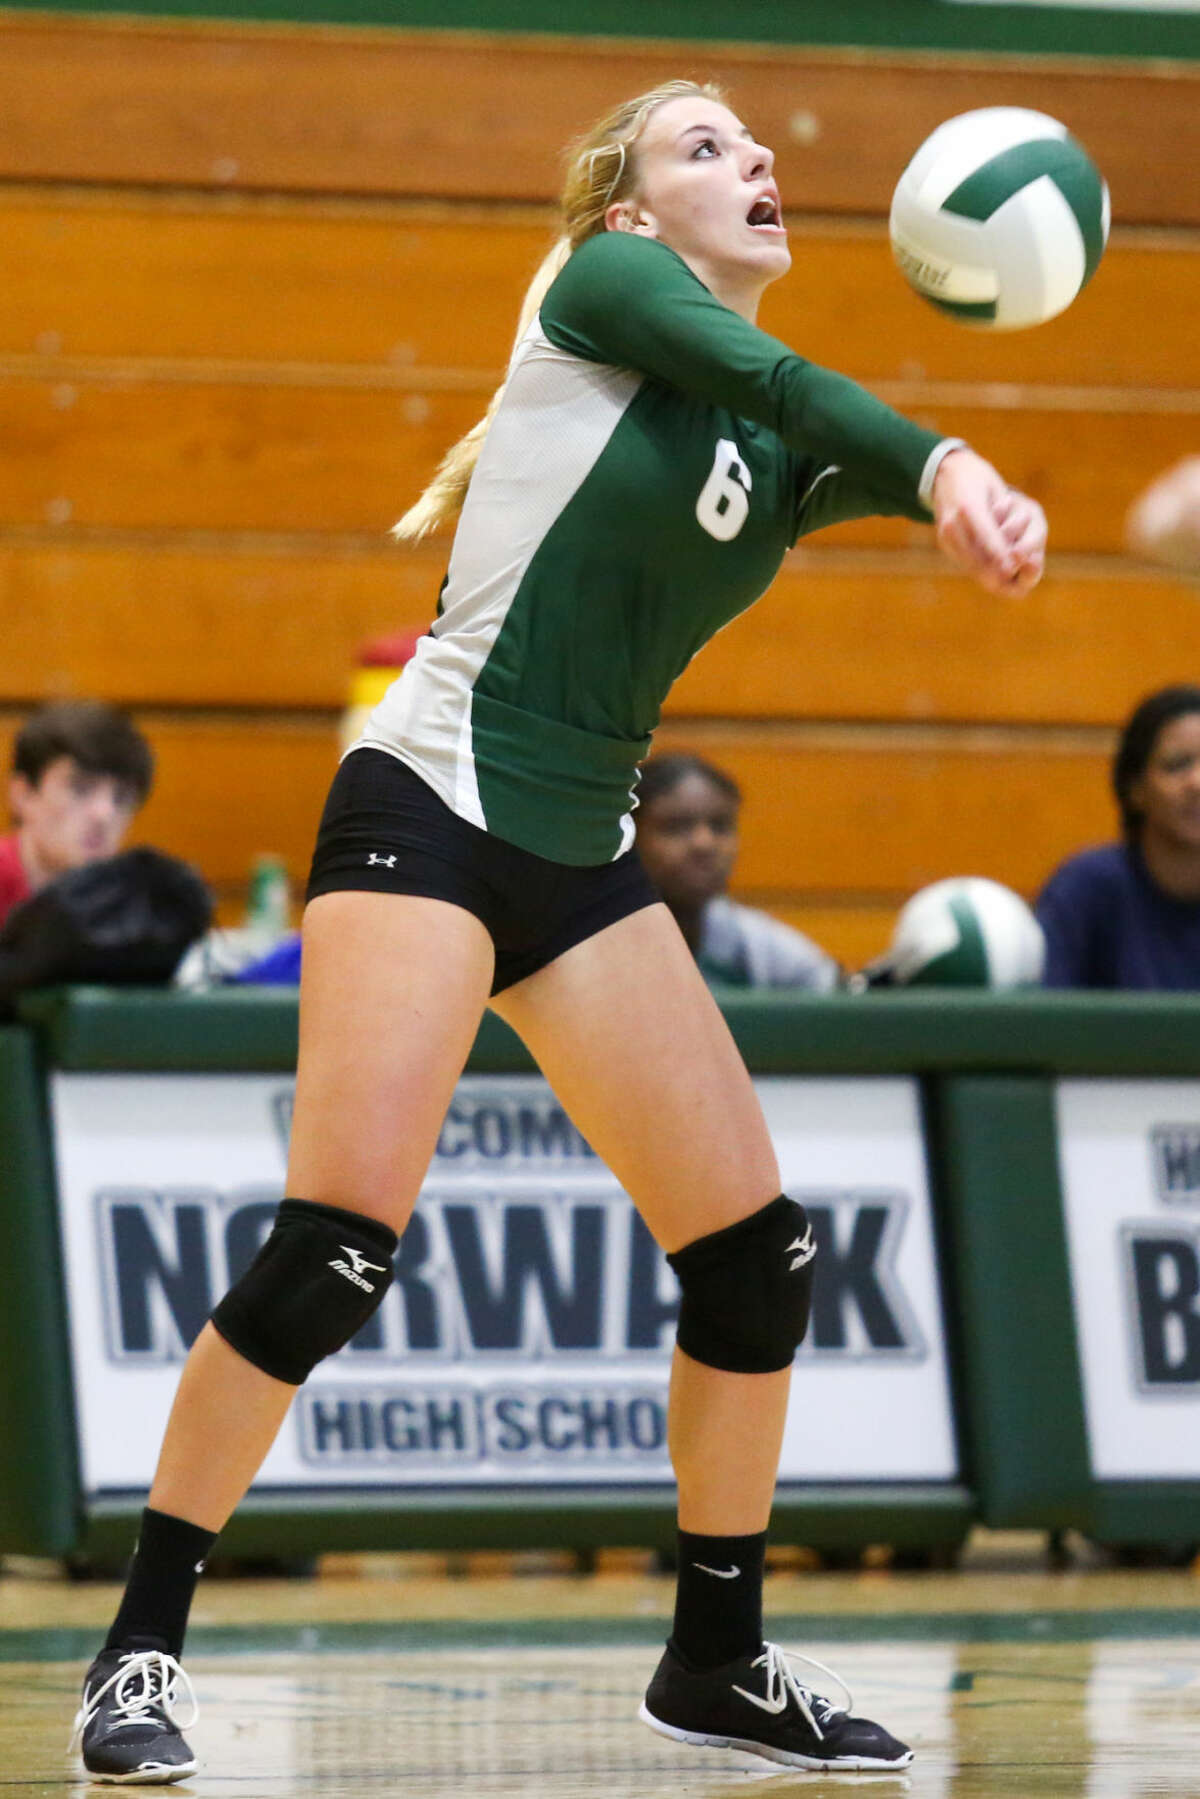 Hour photo/Chris Palermo. Amanda Beckwith volleys the ball against New Canaan Wednesday evening at Norwalk High School.